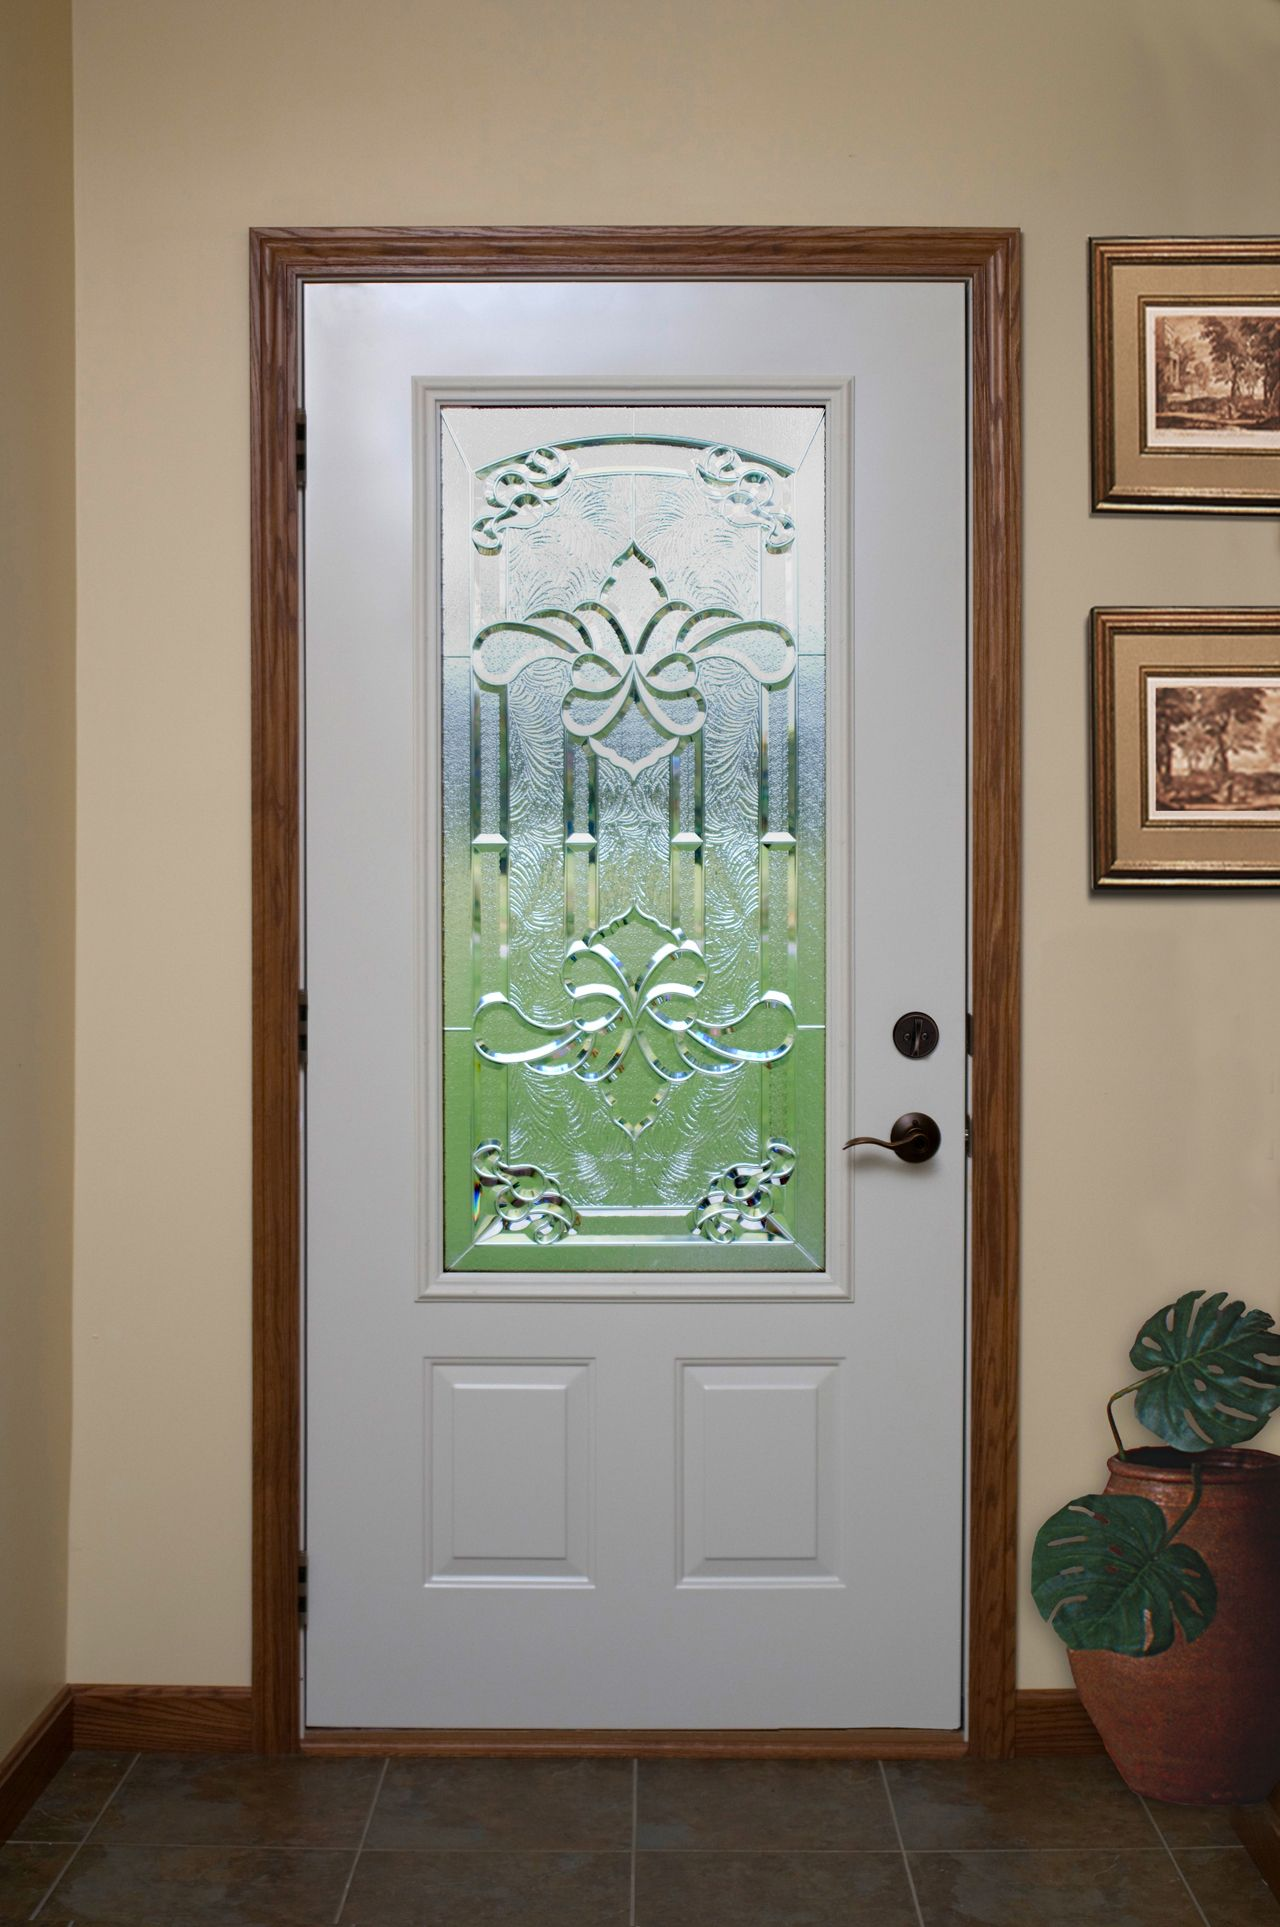 Fill Your Home With Light And Maintain Your Privacy With This Laminated  Decorative Glass From ProVia. Storm DoorsDecorative ...